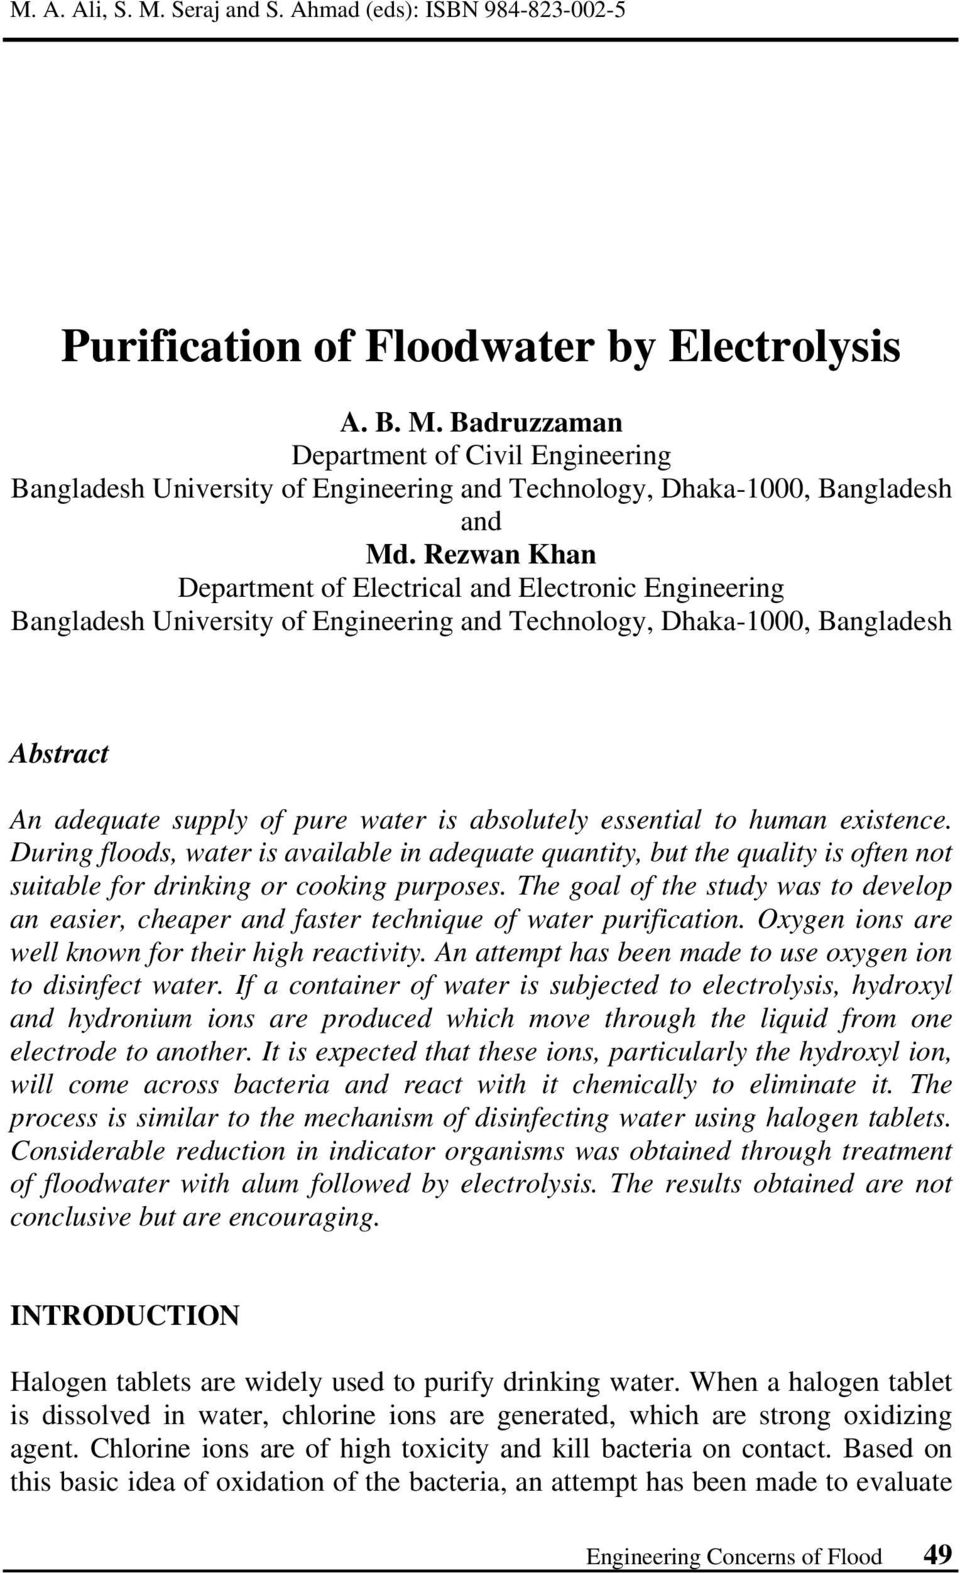 Purification of Floodwater by Electrolysis - PDF